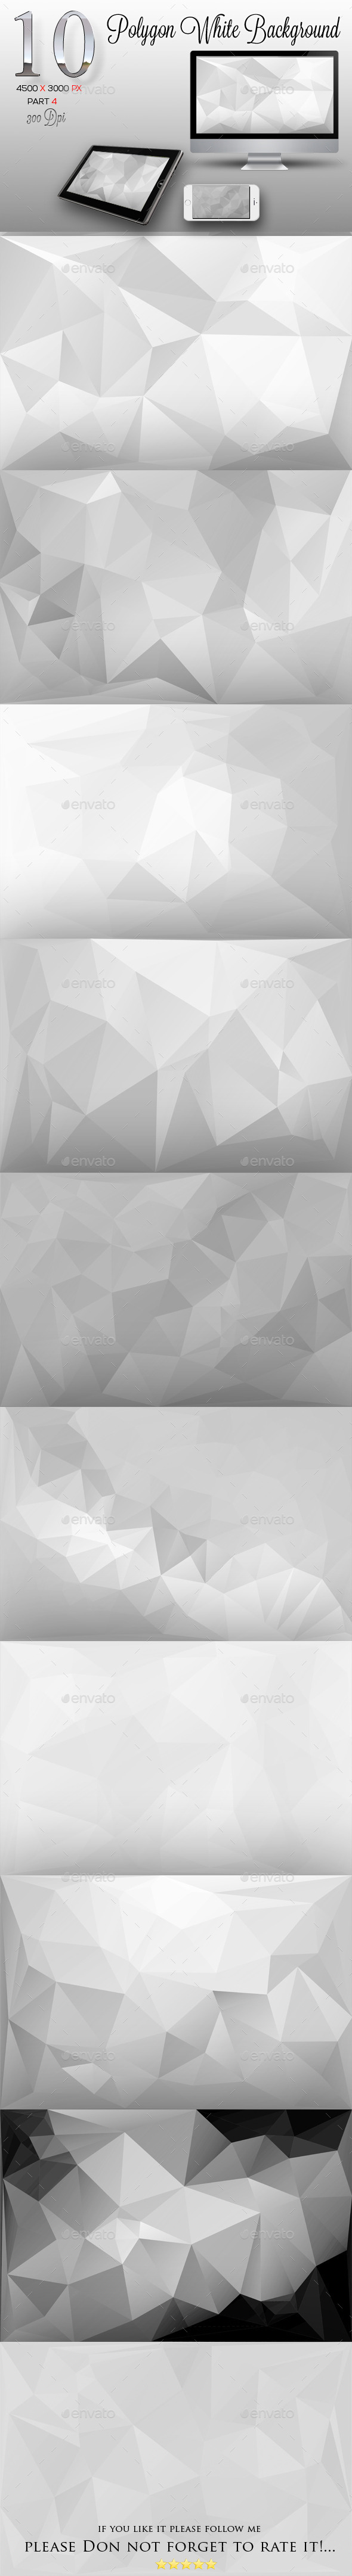 10 Polygon White Background Part 4 - Backgrounds Graphics